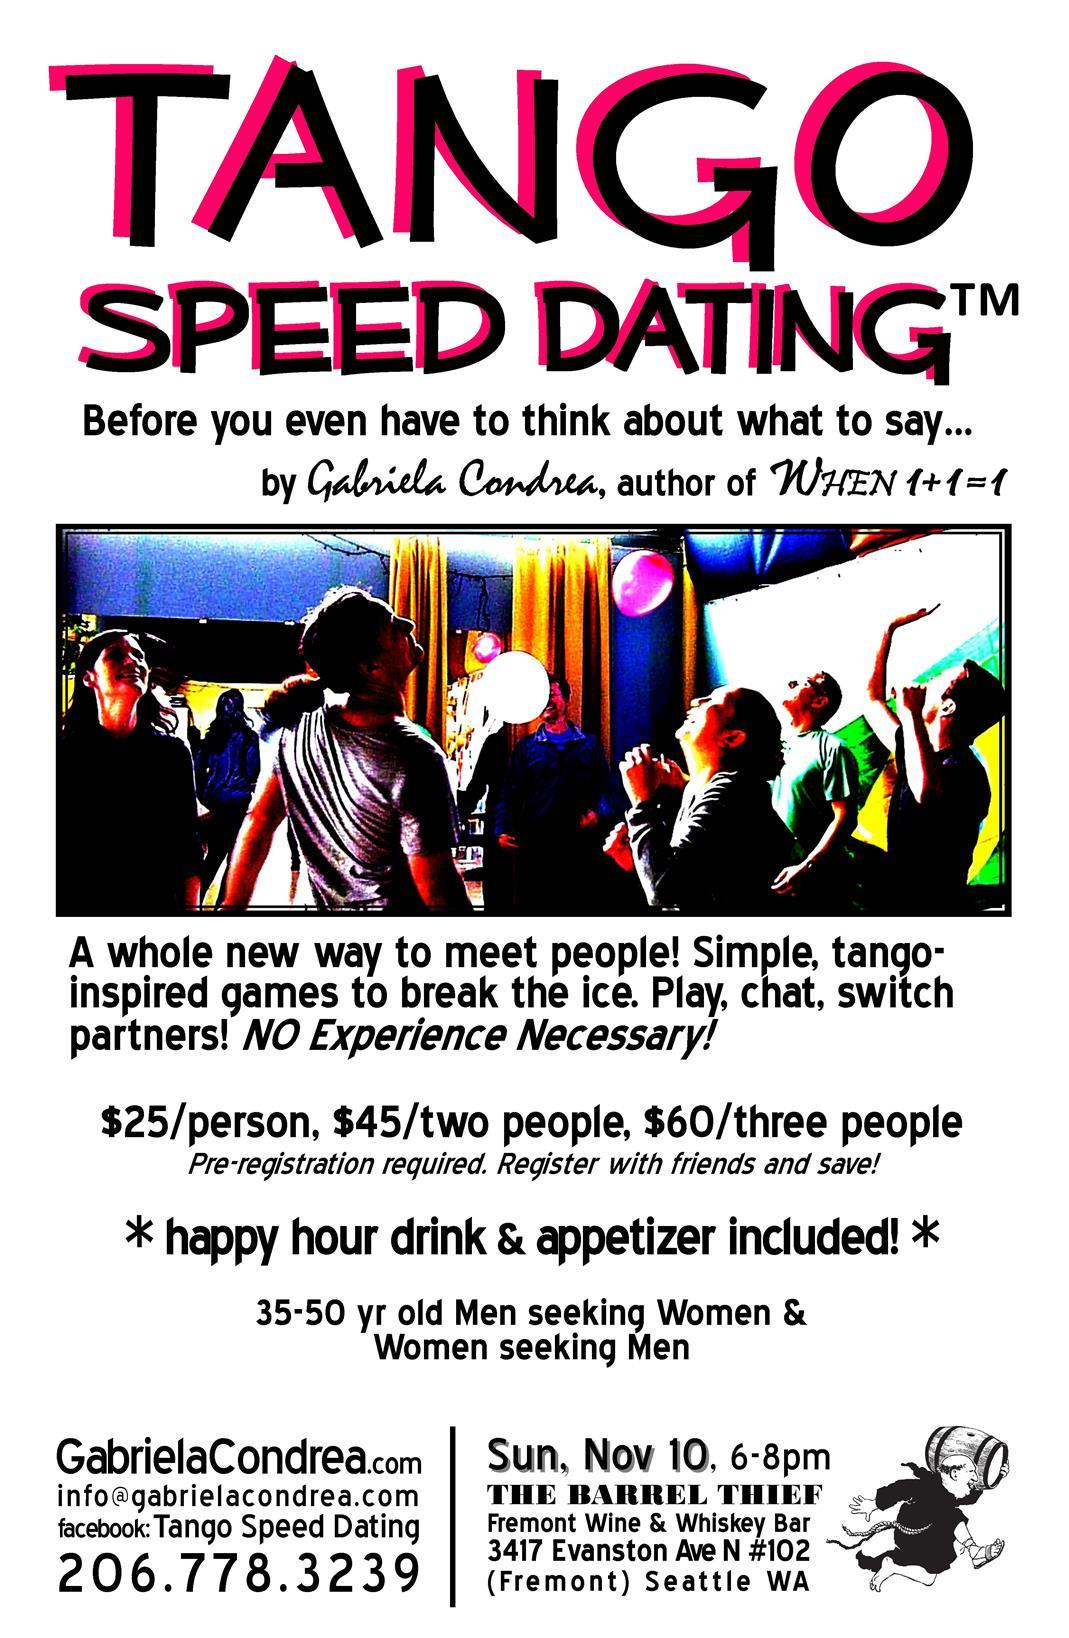 bucks county speed dating Pre-dating allentown speed dating singles events - monthly parties in allentown pre-dating is the world's largest speed dating company focusing on single professionals.